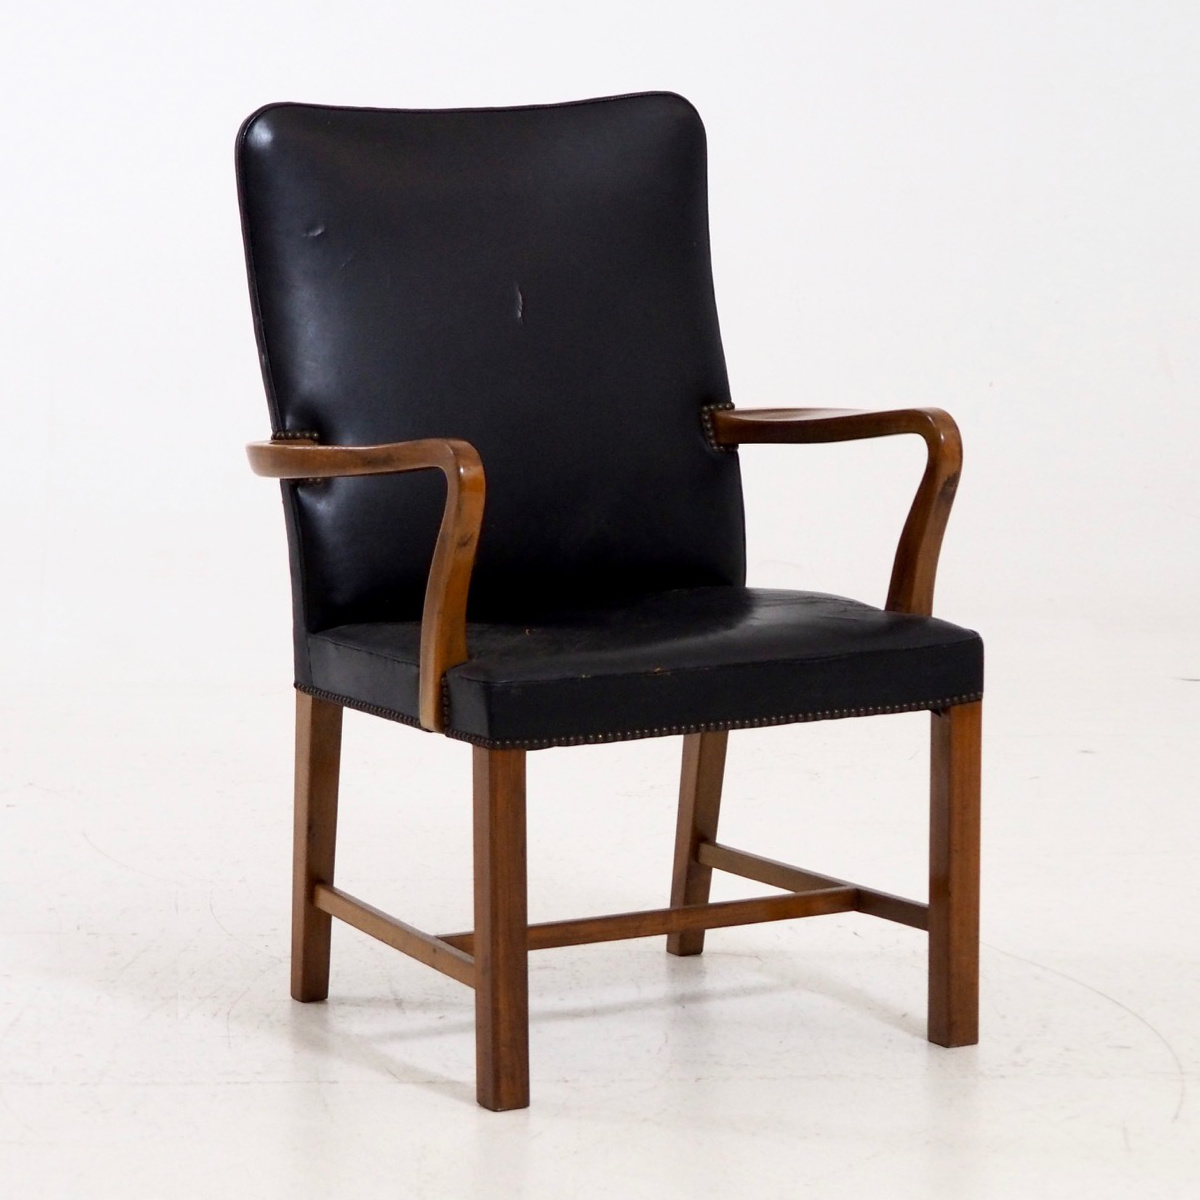 Danish armchair, circa 1960. - € 700